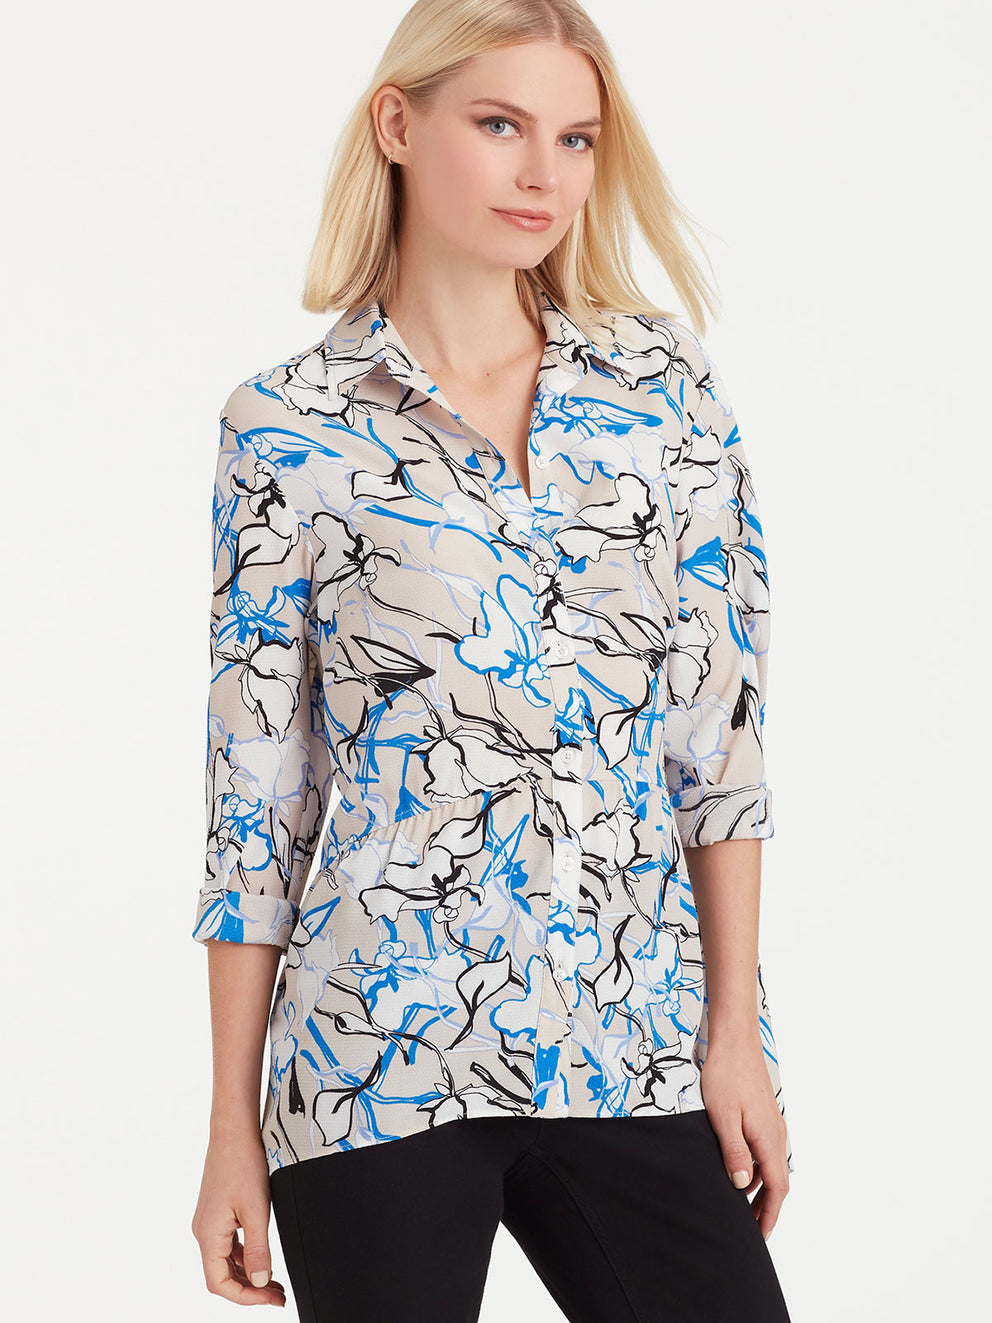 The Jones New York Button-Down Peplum Top in color Sapphire Floral - Image Position 2